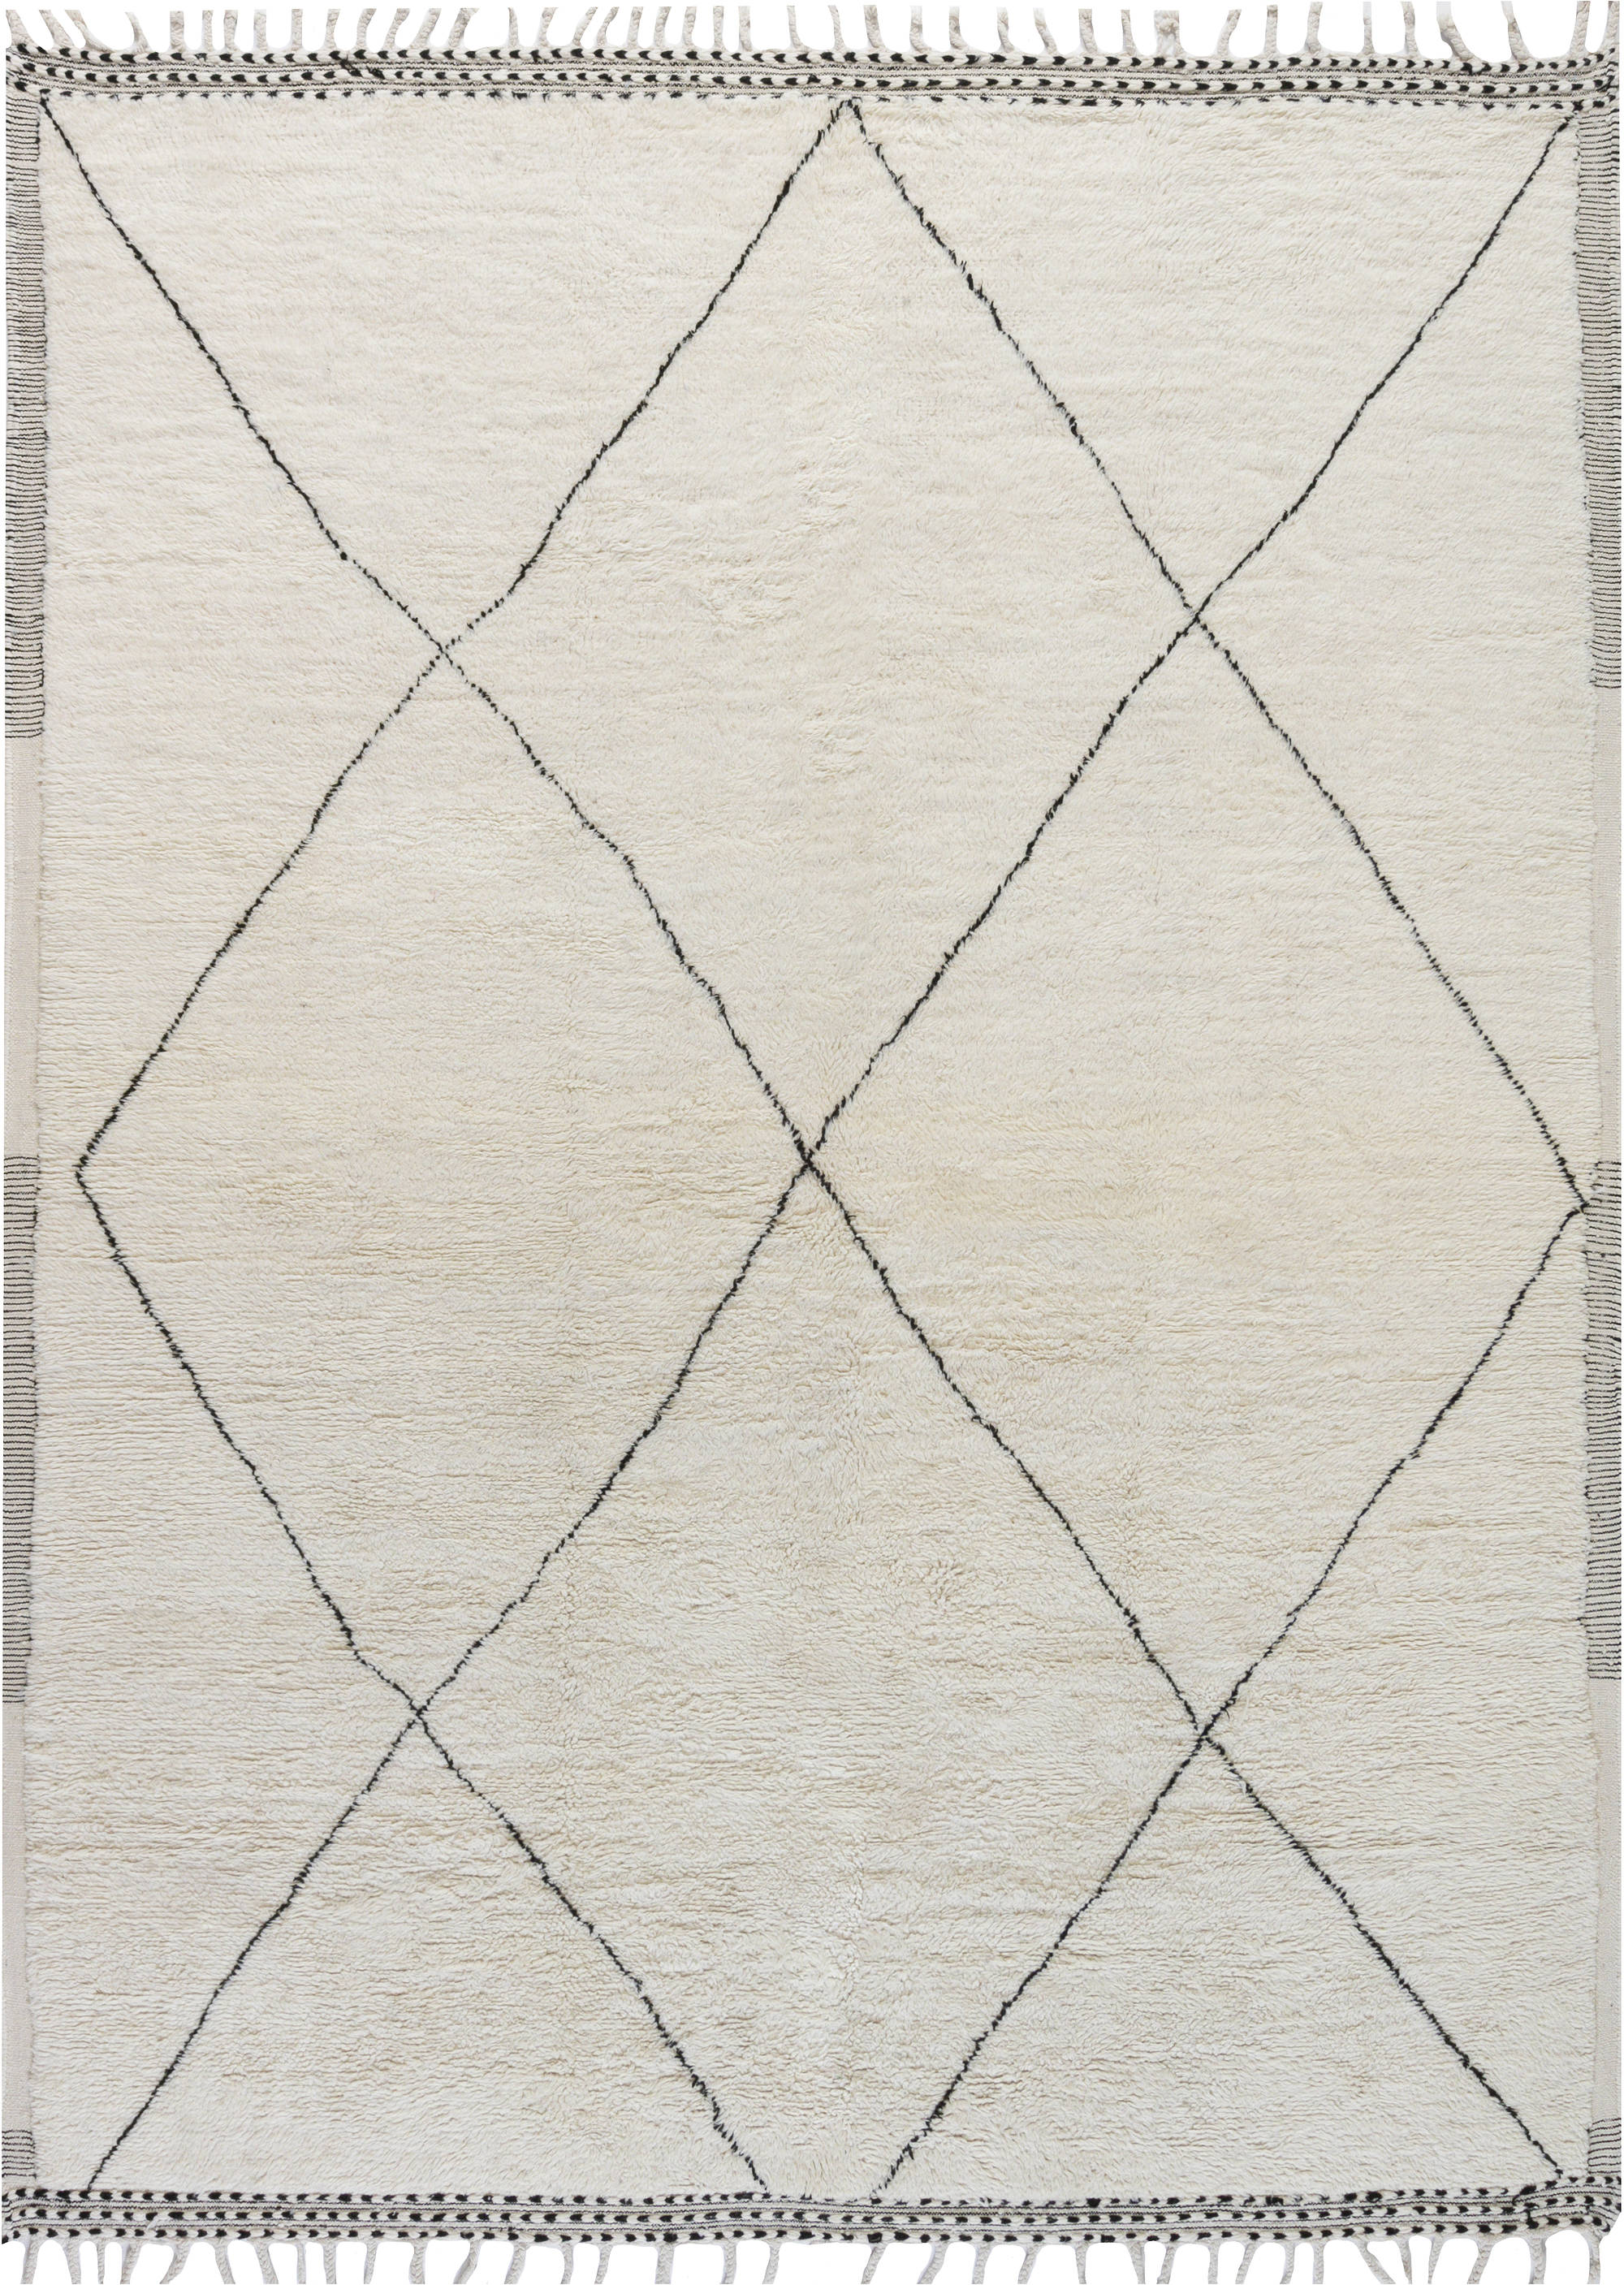 Hand-knotted Tribal Style Modern Moroccan Wool Area Rug N12128